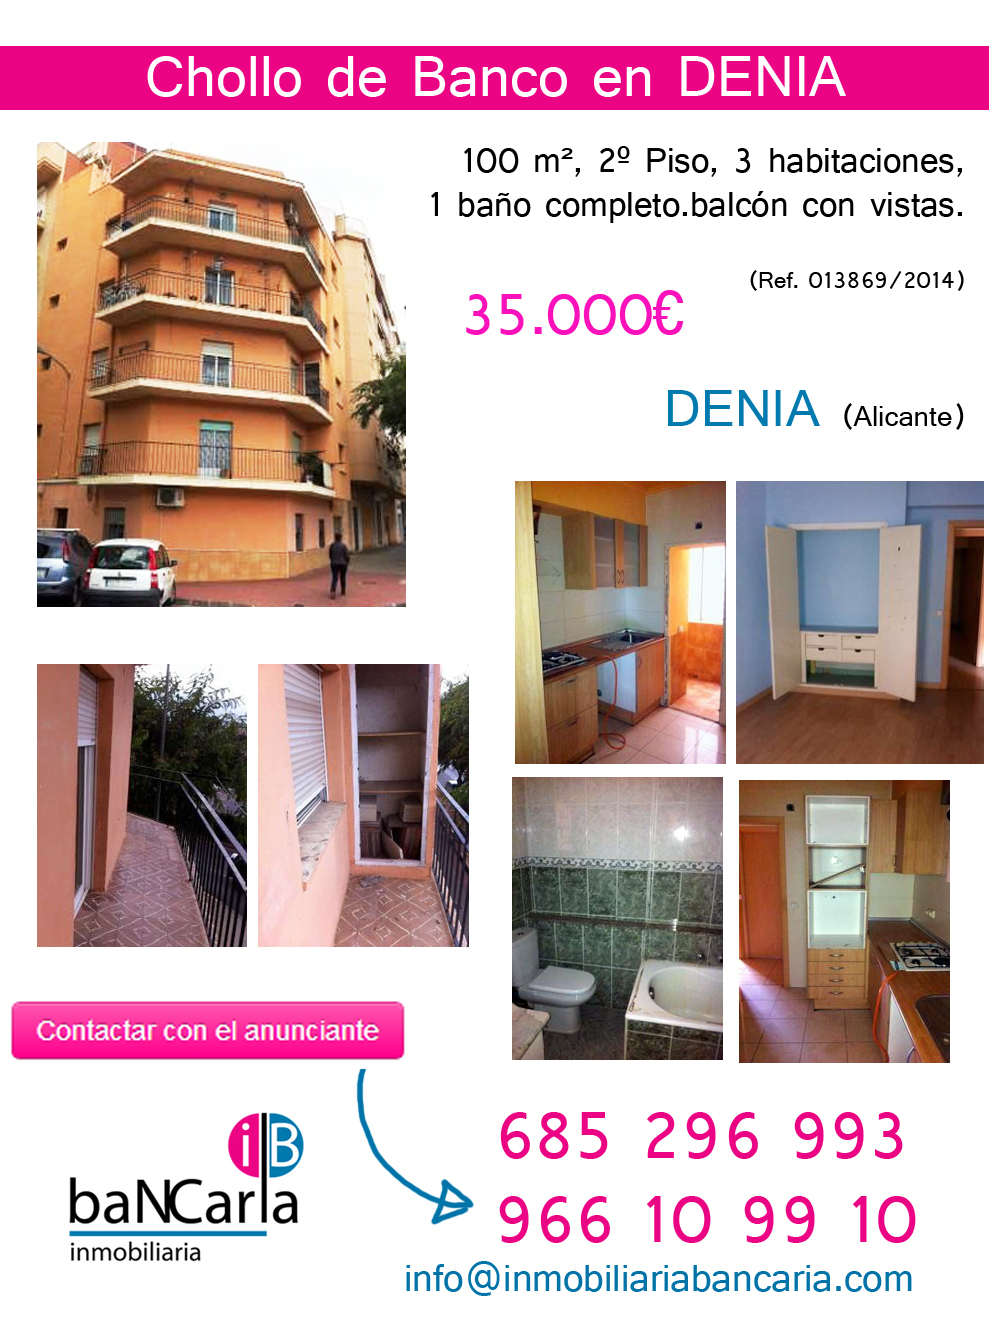 Piso de banco a la venta en denia alicante chollo de for Pisos del banco en alicante